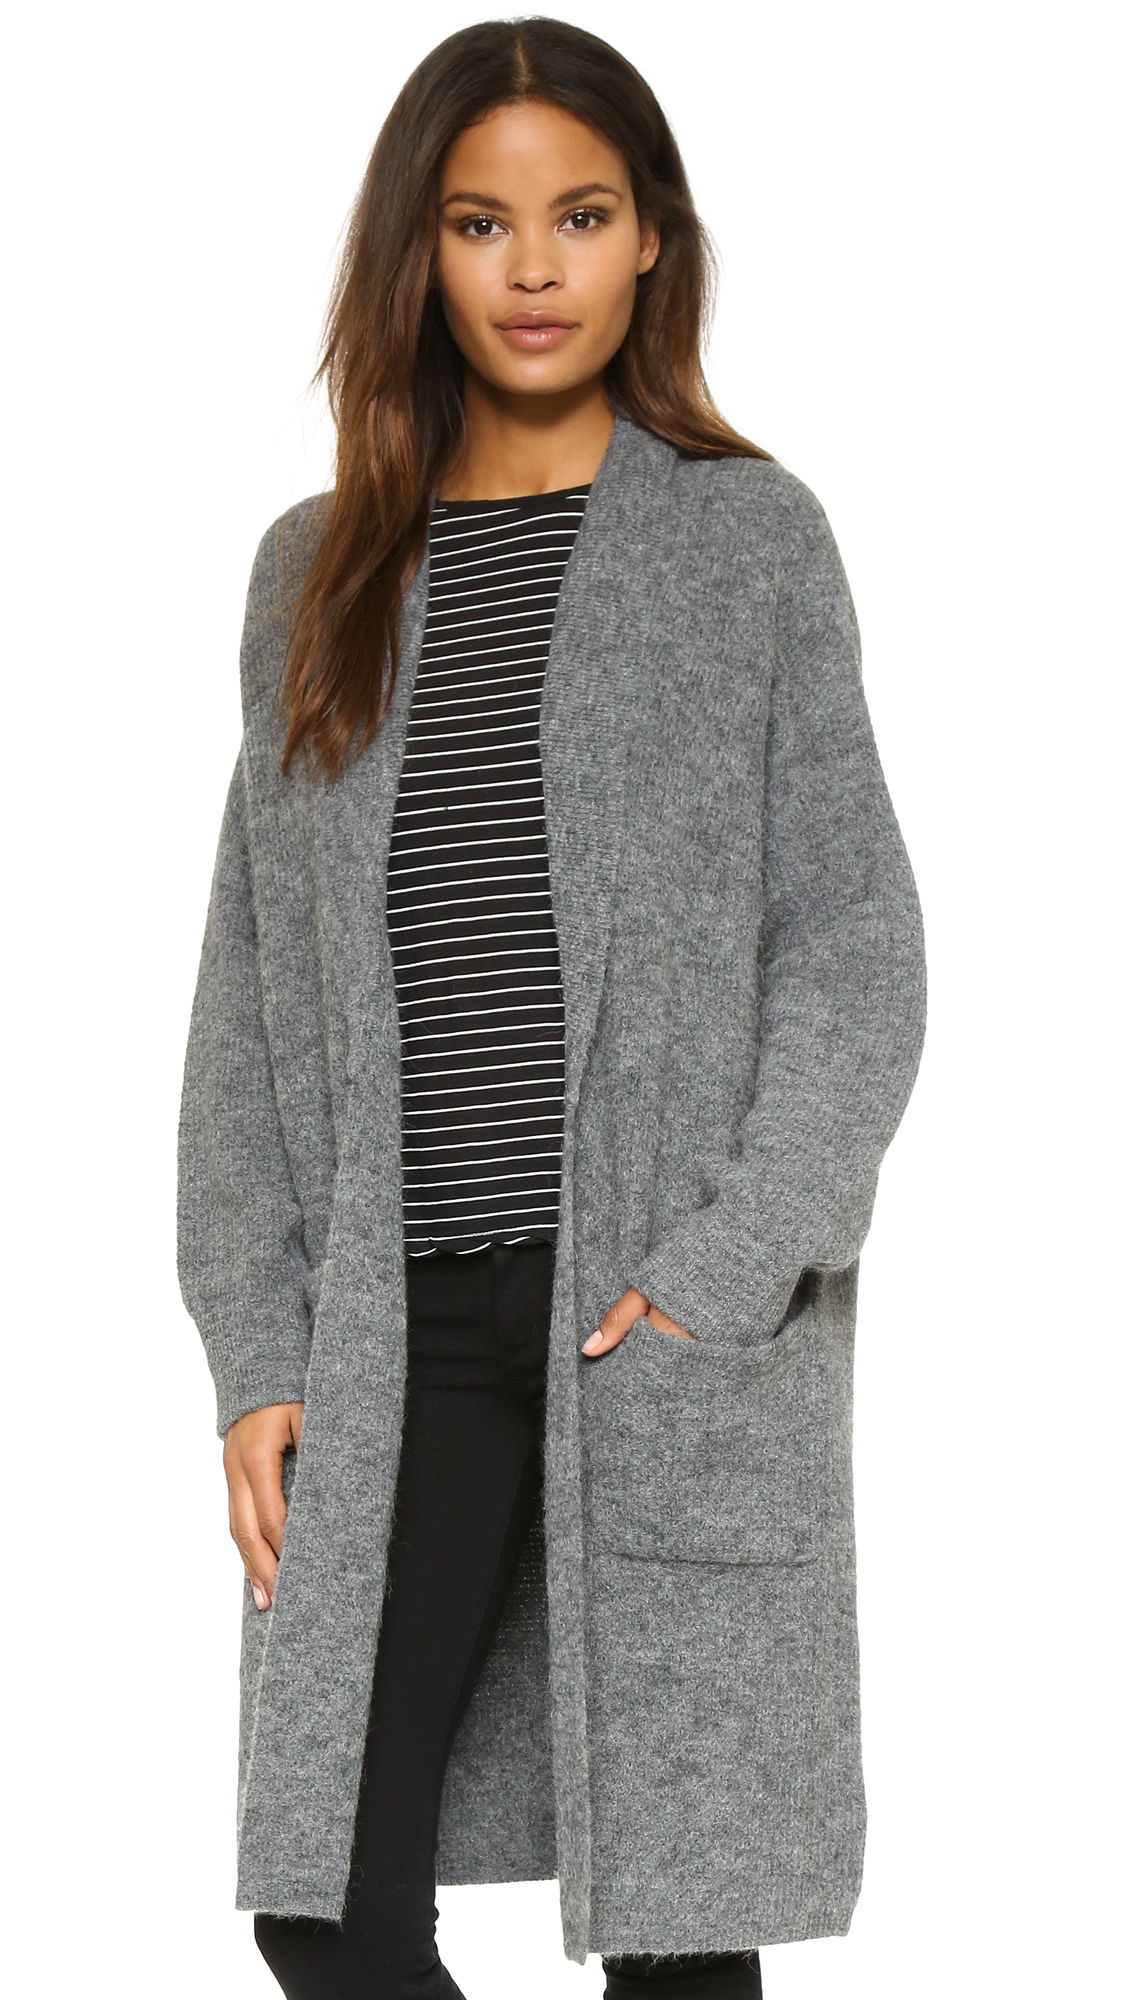 88c42d25ae Dkny Pure Cardigan - Heather Grey in Gray